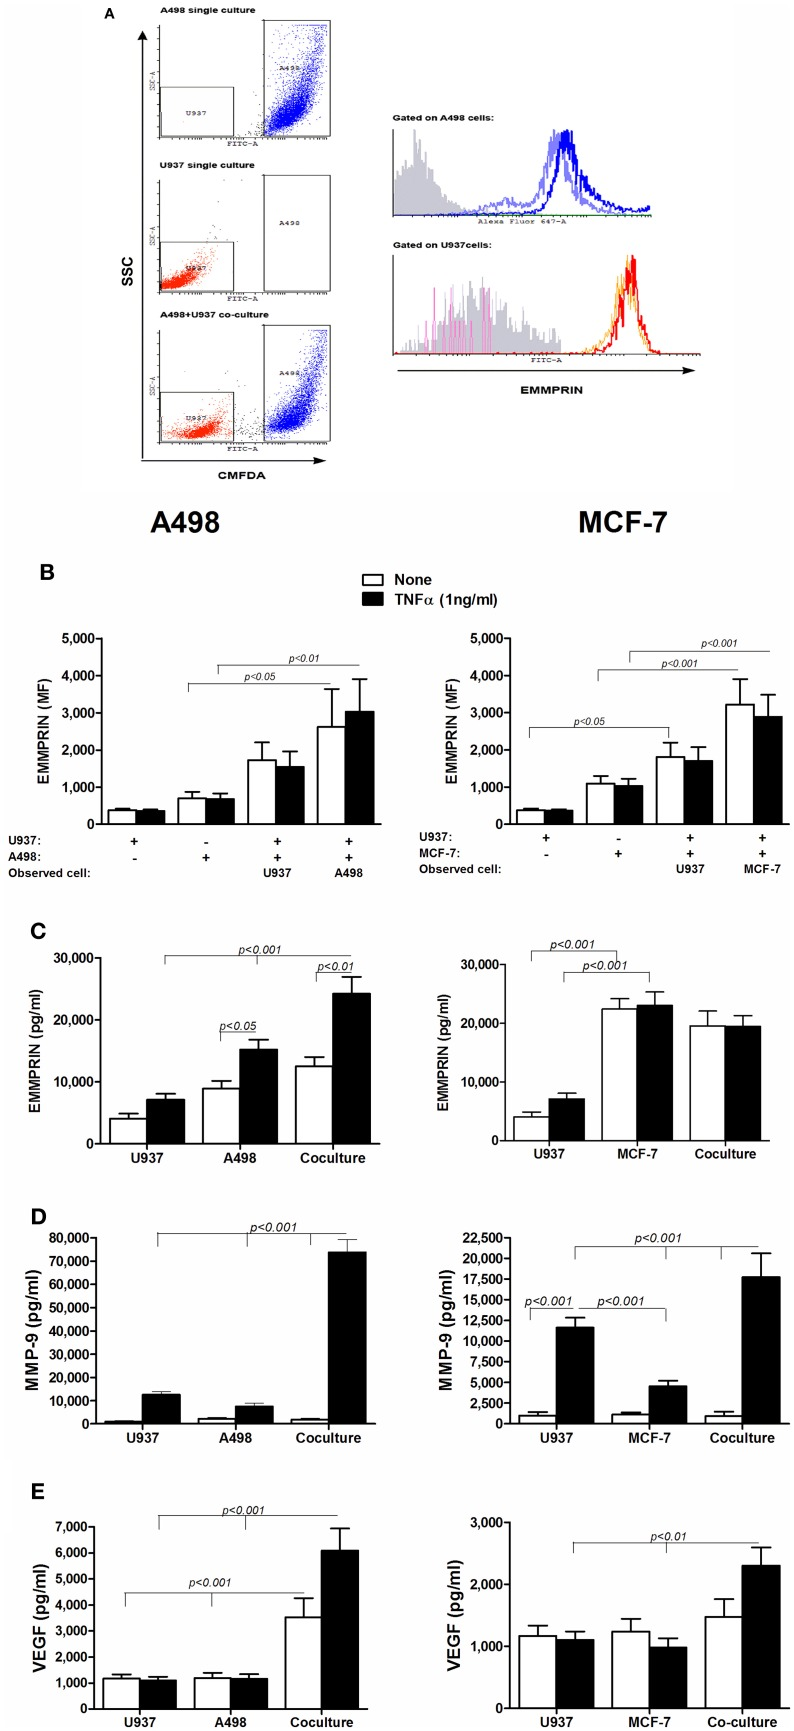 The effect of co-culture on the secretion of EMMPRIN, MMP-9 and VEGF . 10 6 A498 or MCF-7 cells were incubated in a serum-free medium either separately or with 0.5 × 10 6 U937 cells in co-culture for 48 h, with or without the addition of TNFα (1 ng/ml), and 0.5 × 10 6 U937 cells were incubated in a serum-free medium with or without the addition of TNFα (1 ng/ml). (A) Representative dot plot for the A498 and U937 co-cultures. Light blue and orange histograms—EMMPRIN expression in single cultures of A498 cells and U937 cells, respectively; Blue and red histograms—EMMPRIN expression measured separately on A498 or U937 cells, respectively, incubated in their co-cultures. Gray histogram—isotype control. (B) Mean fluorescence (MF) of the membranal expression of EMMPRIN that was evaluated by flow cytometry ( n = 8). Concentrations of secreted proteins were determined in the supernatants by ELISA for (C) EMMPRIN ( n = 6), (D) MMP-9 ( n = 8) and (E) VEGF ( n = 8).